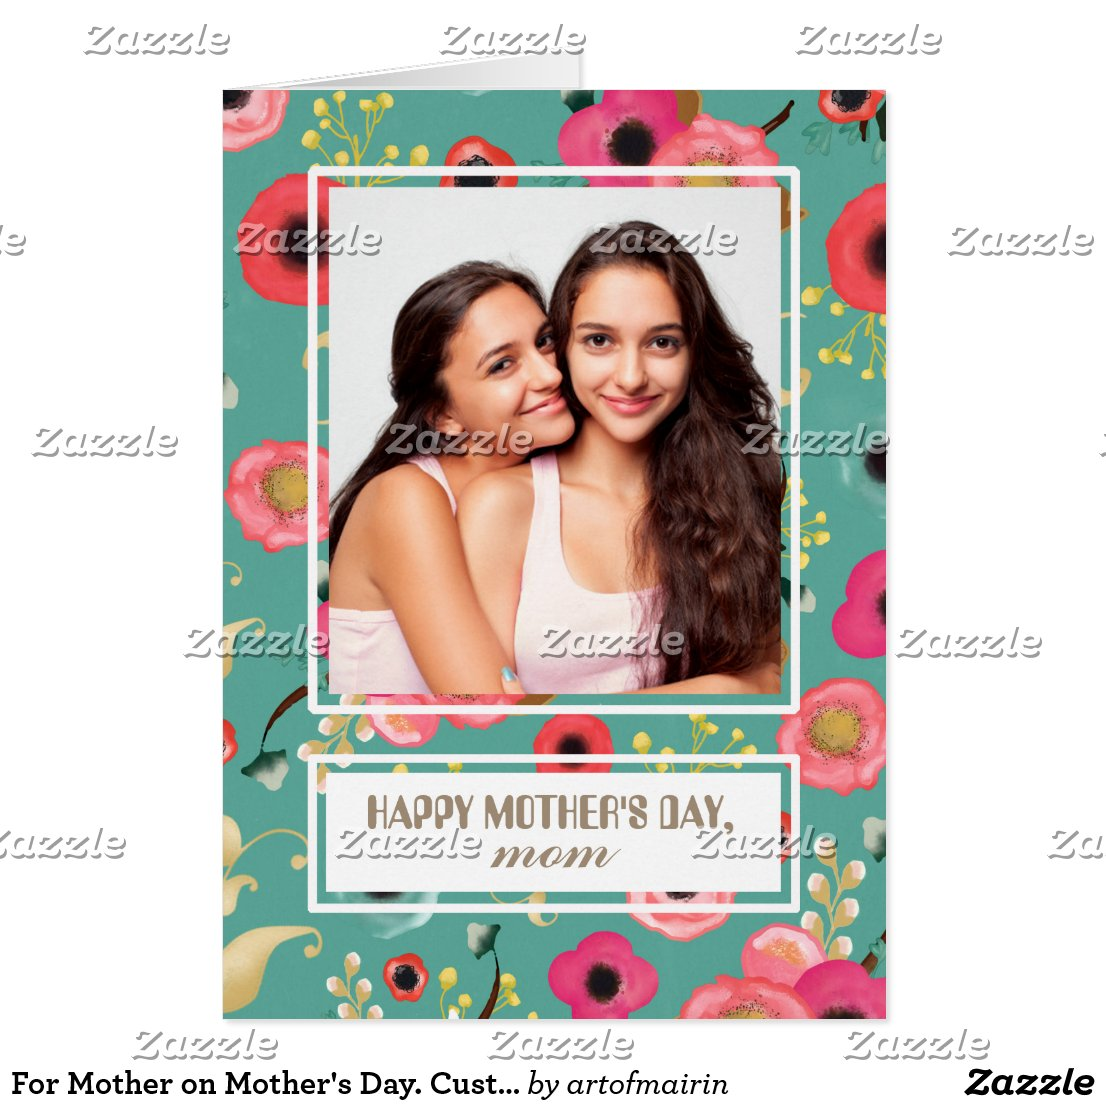 For Mother on Mother's Day Cards